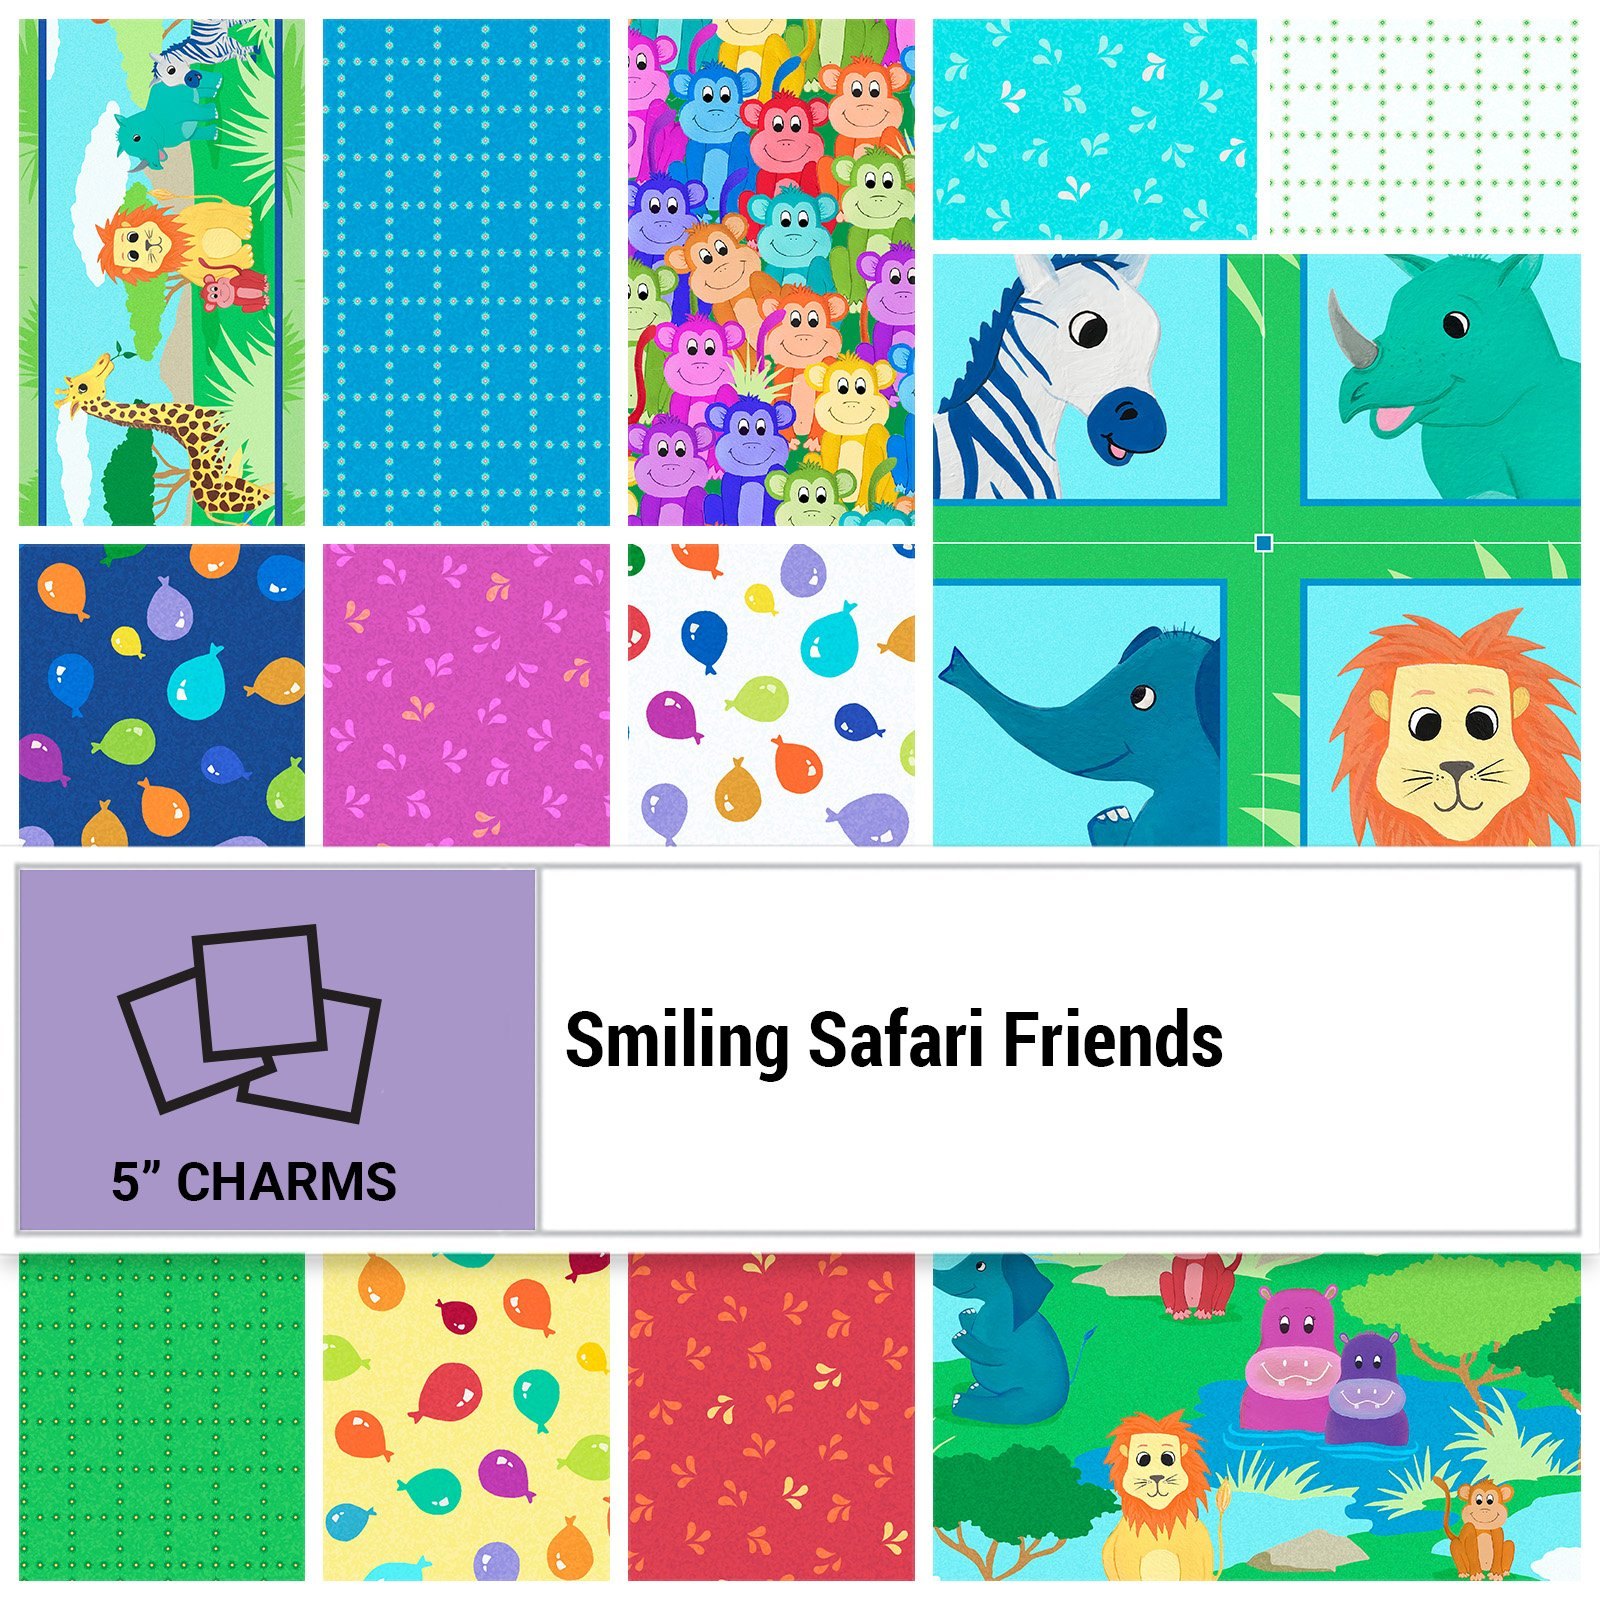 SSFR-005X5 - SMILING SAFARI FRIENDS 5 SQUARES BY P&B BOUTIQUE 42PCS - ARRIVING IN SEPTEMBER 2021